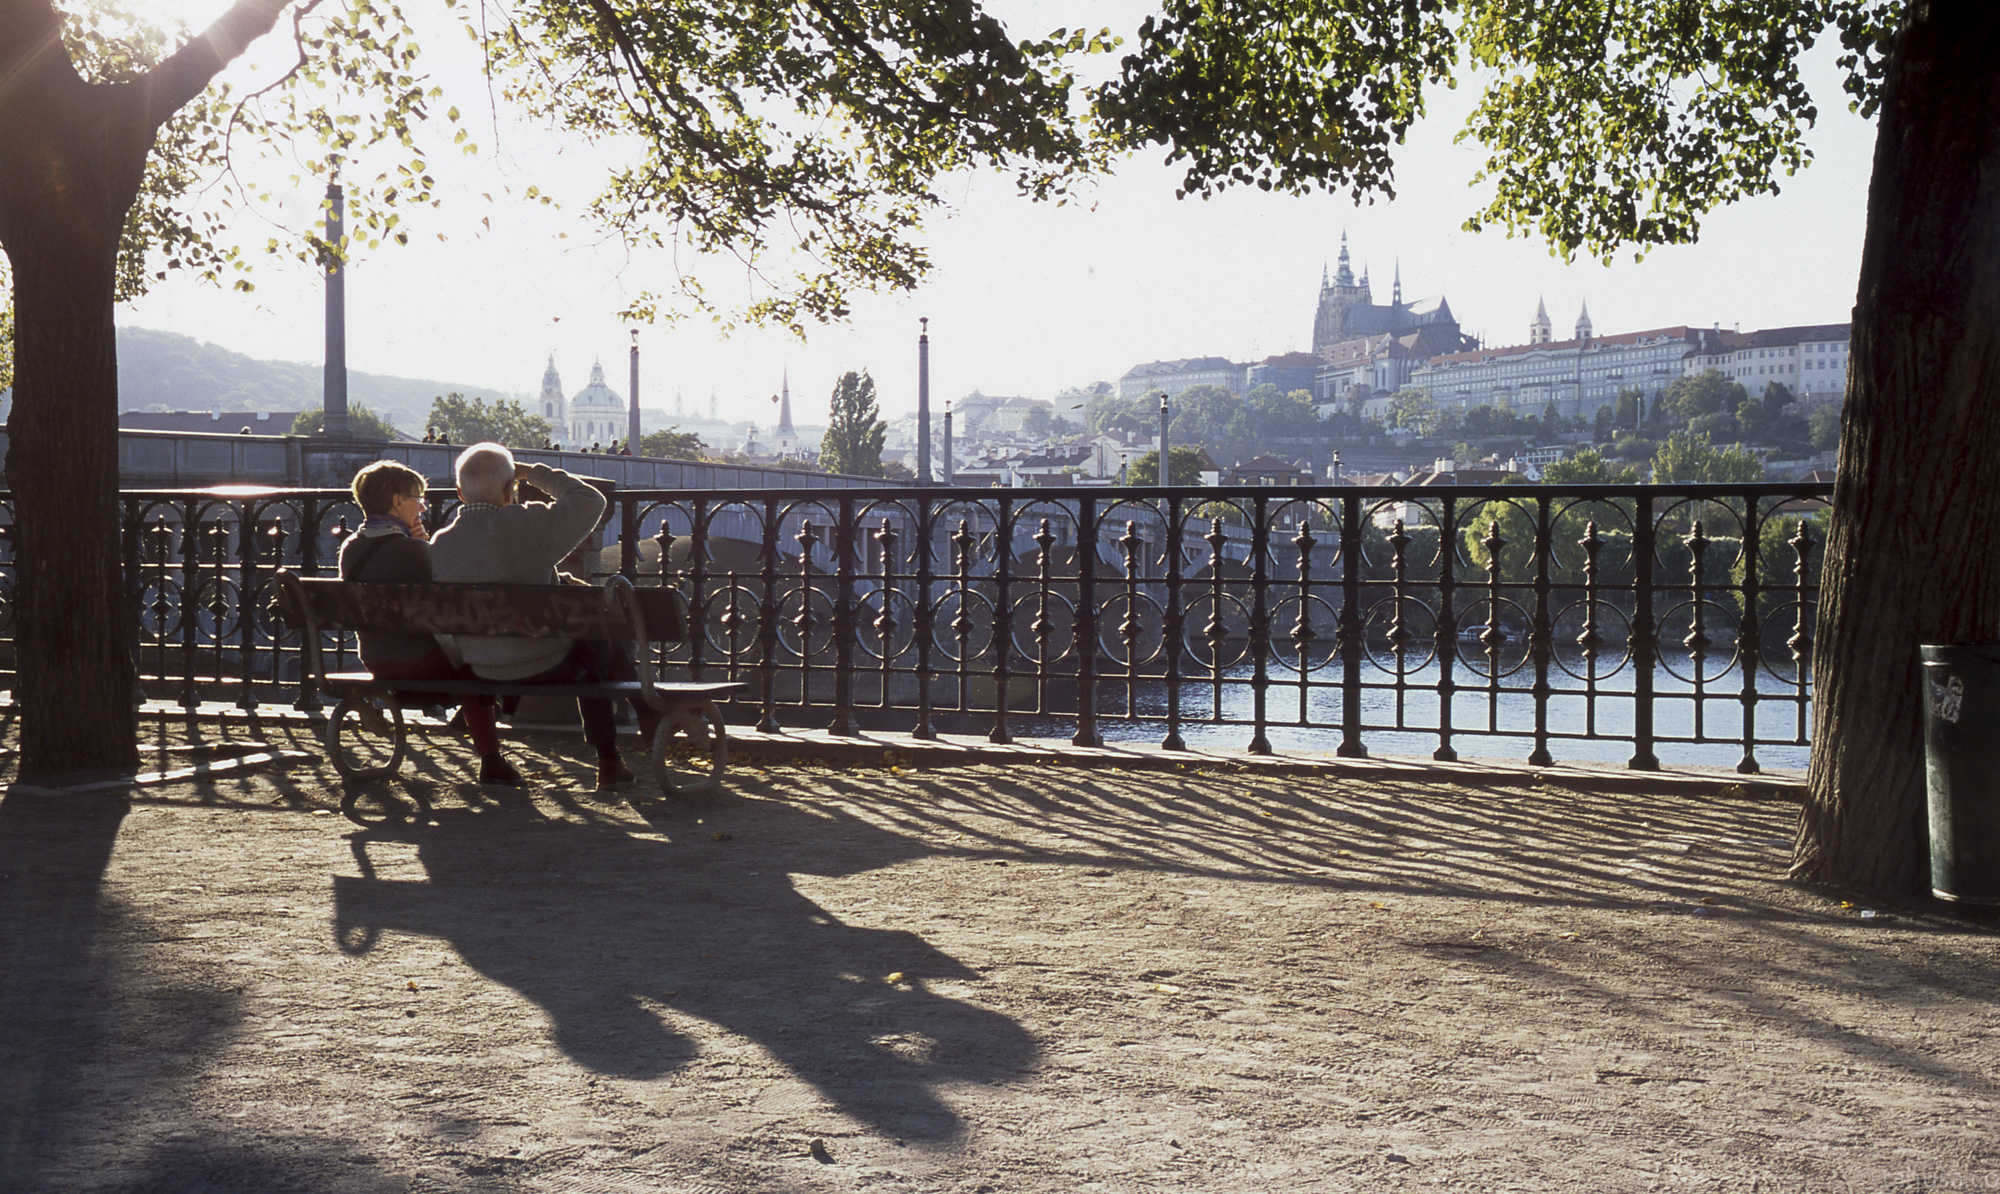 Prague-old-couple-sitting-enjoy-view-Czech-Republic-most-beautiful-small-town-Scenic-view-positive-film-analog-E6-provia-RDPIII-RDP-fuji-fujifilm-Summicron-35mm-f1-v1-canada-8elements-8ele-street-snap-streetphotography-photowalk